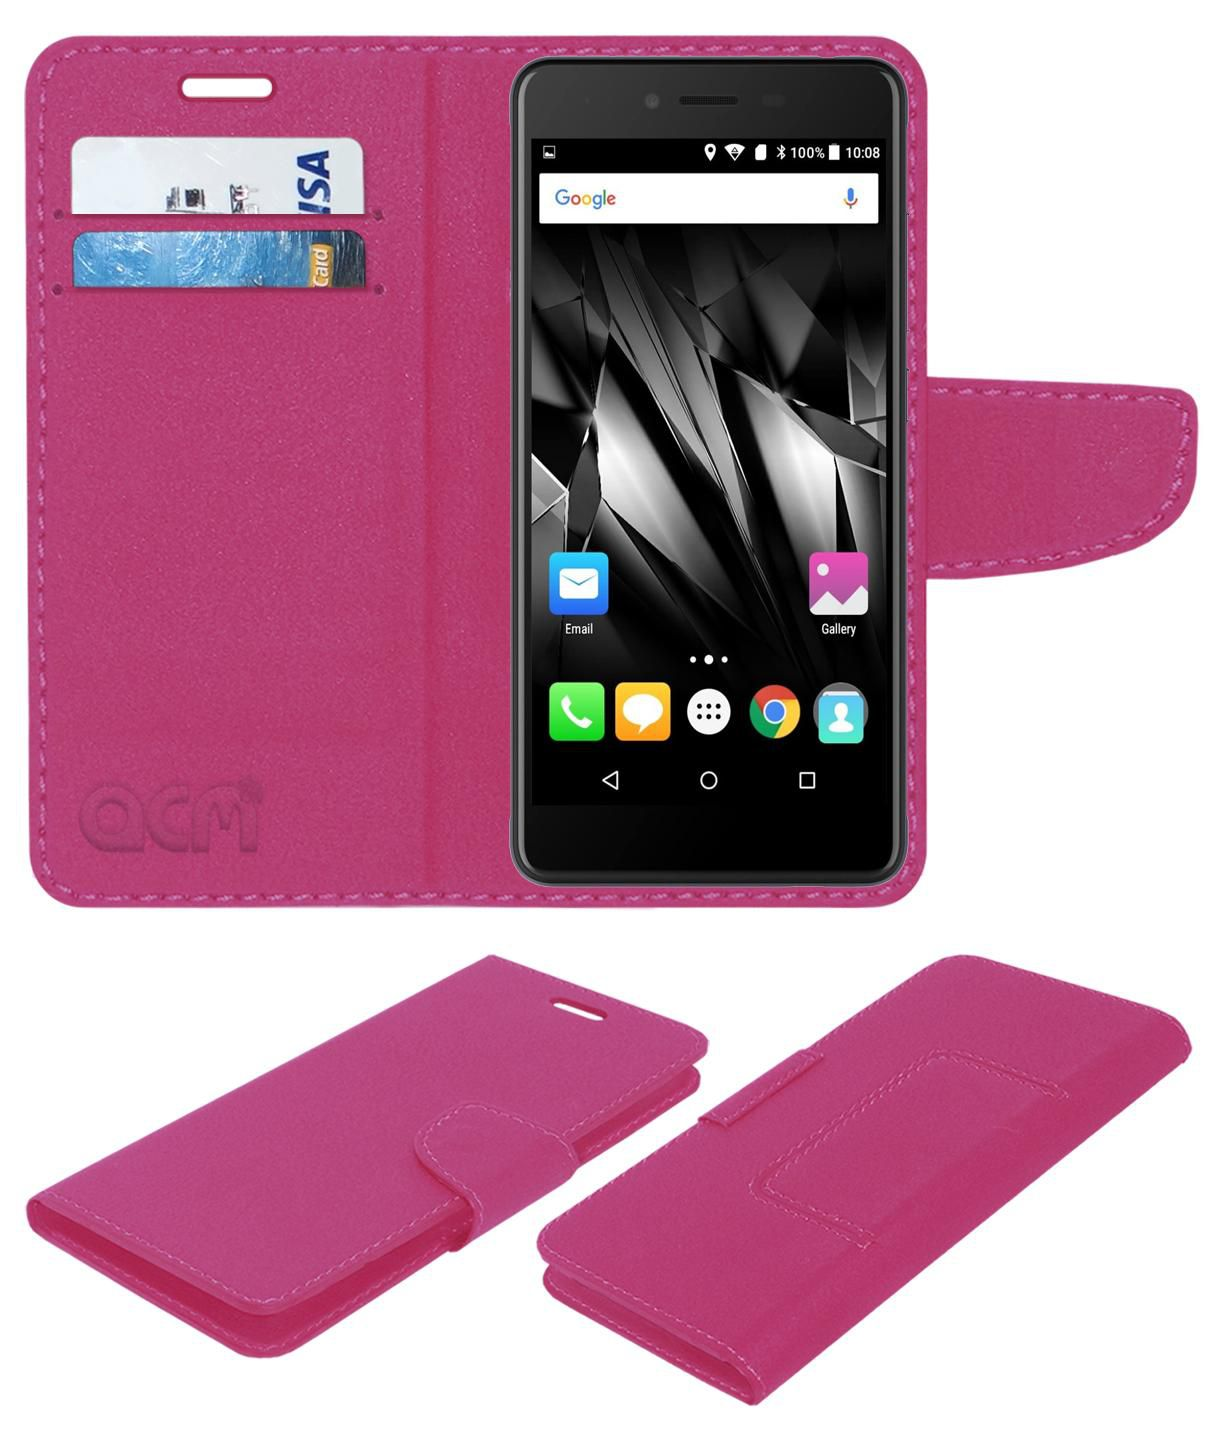 Micromax Bolt Supreme 2 Q301 Flip Cover by ACM - Pink